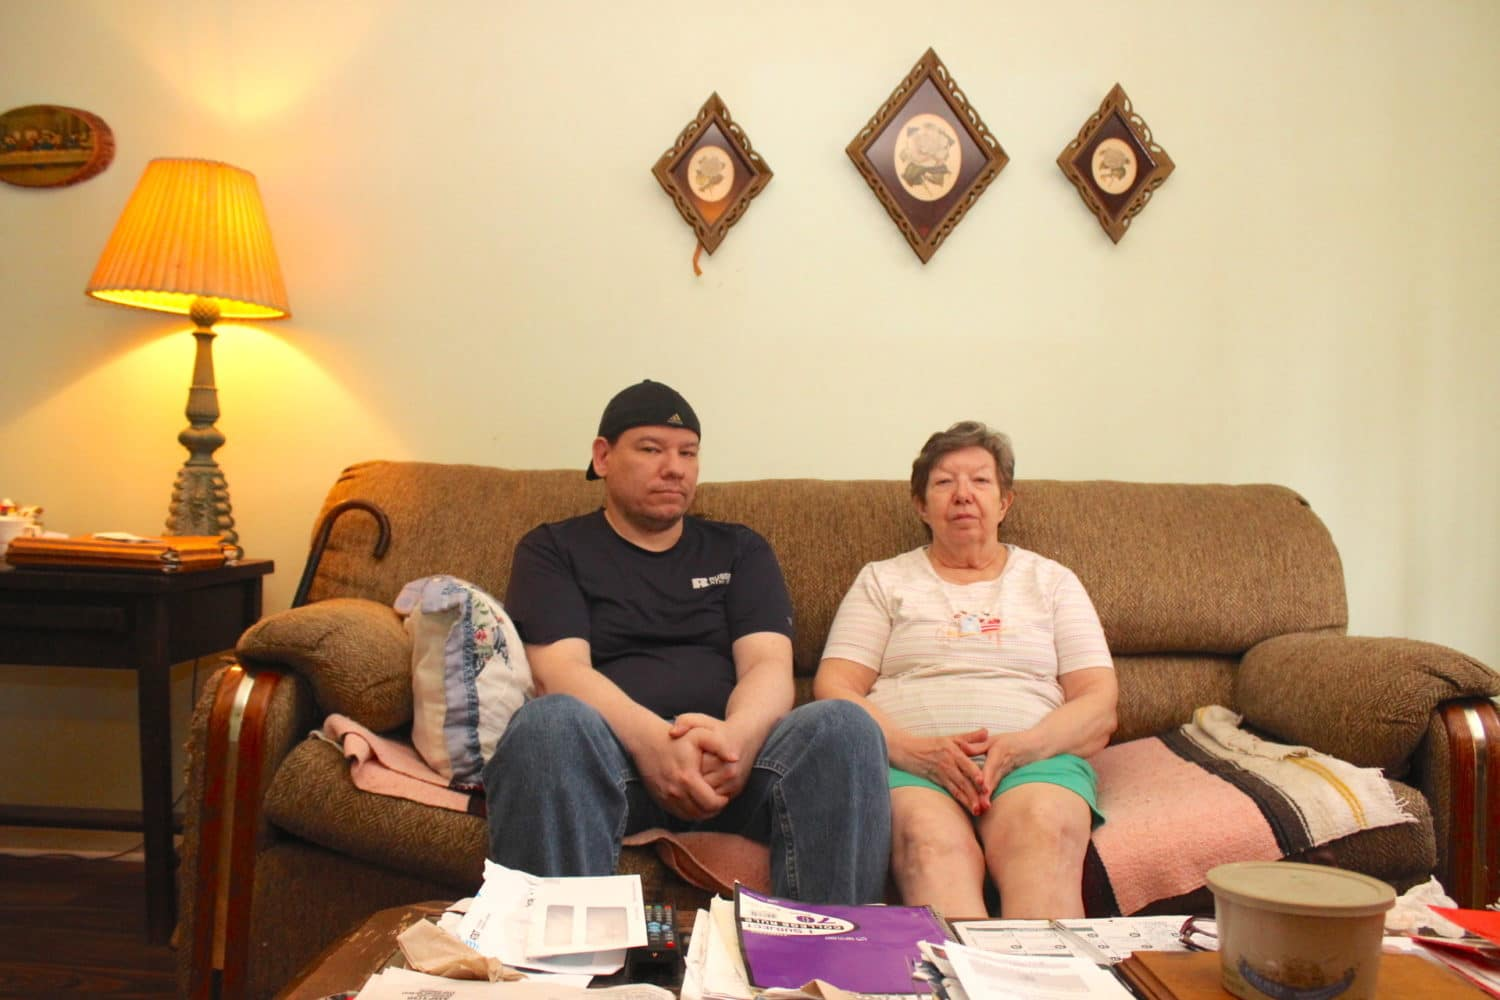 Myrtle Goodman, 73, And Her Son, Walter, 41, Have Lived In Their Apartment  On Buford Highway For 18 Years. Threats Of Rising Rents Have Them Worried  They ...